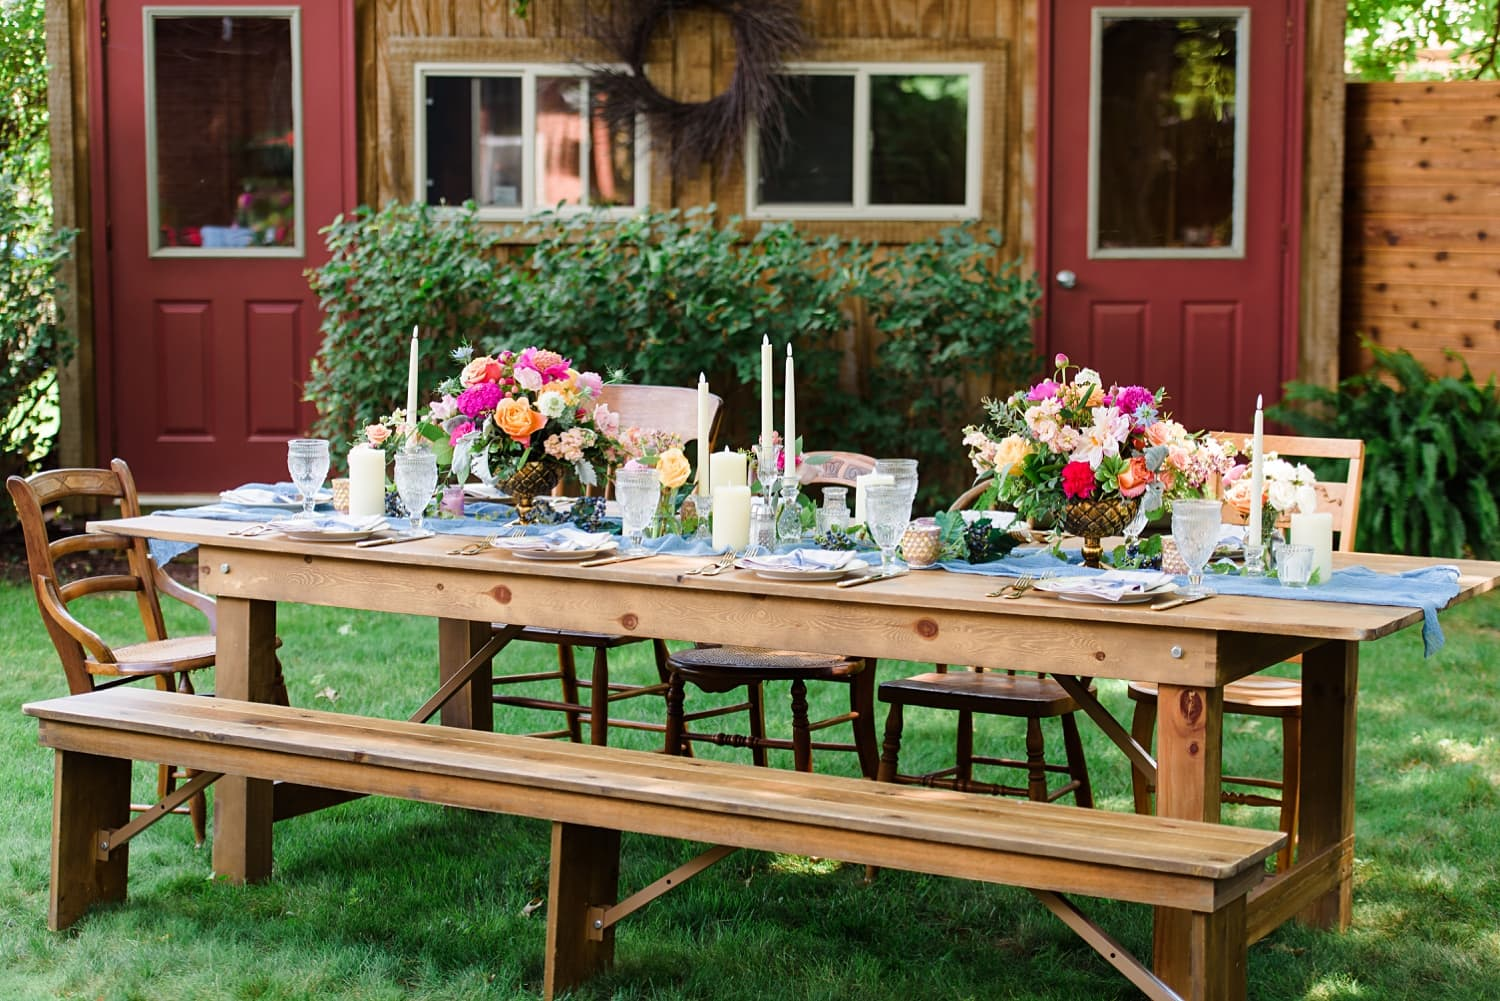 farmhouse tables with colorful floral centerpiece and table runner